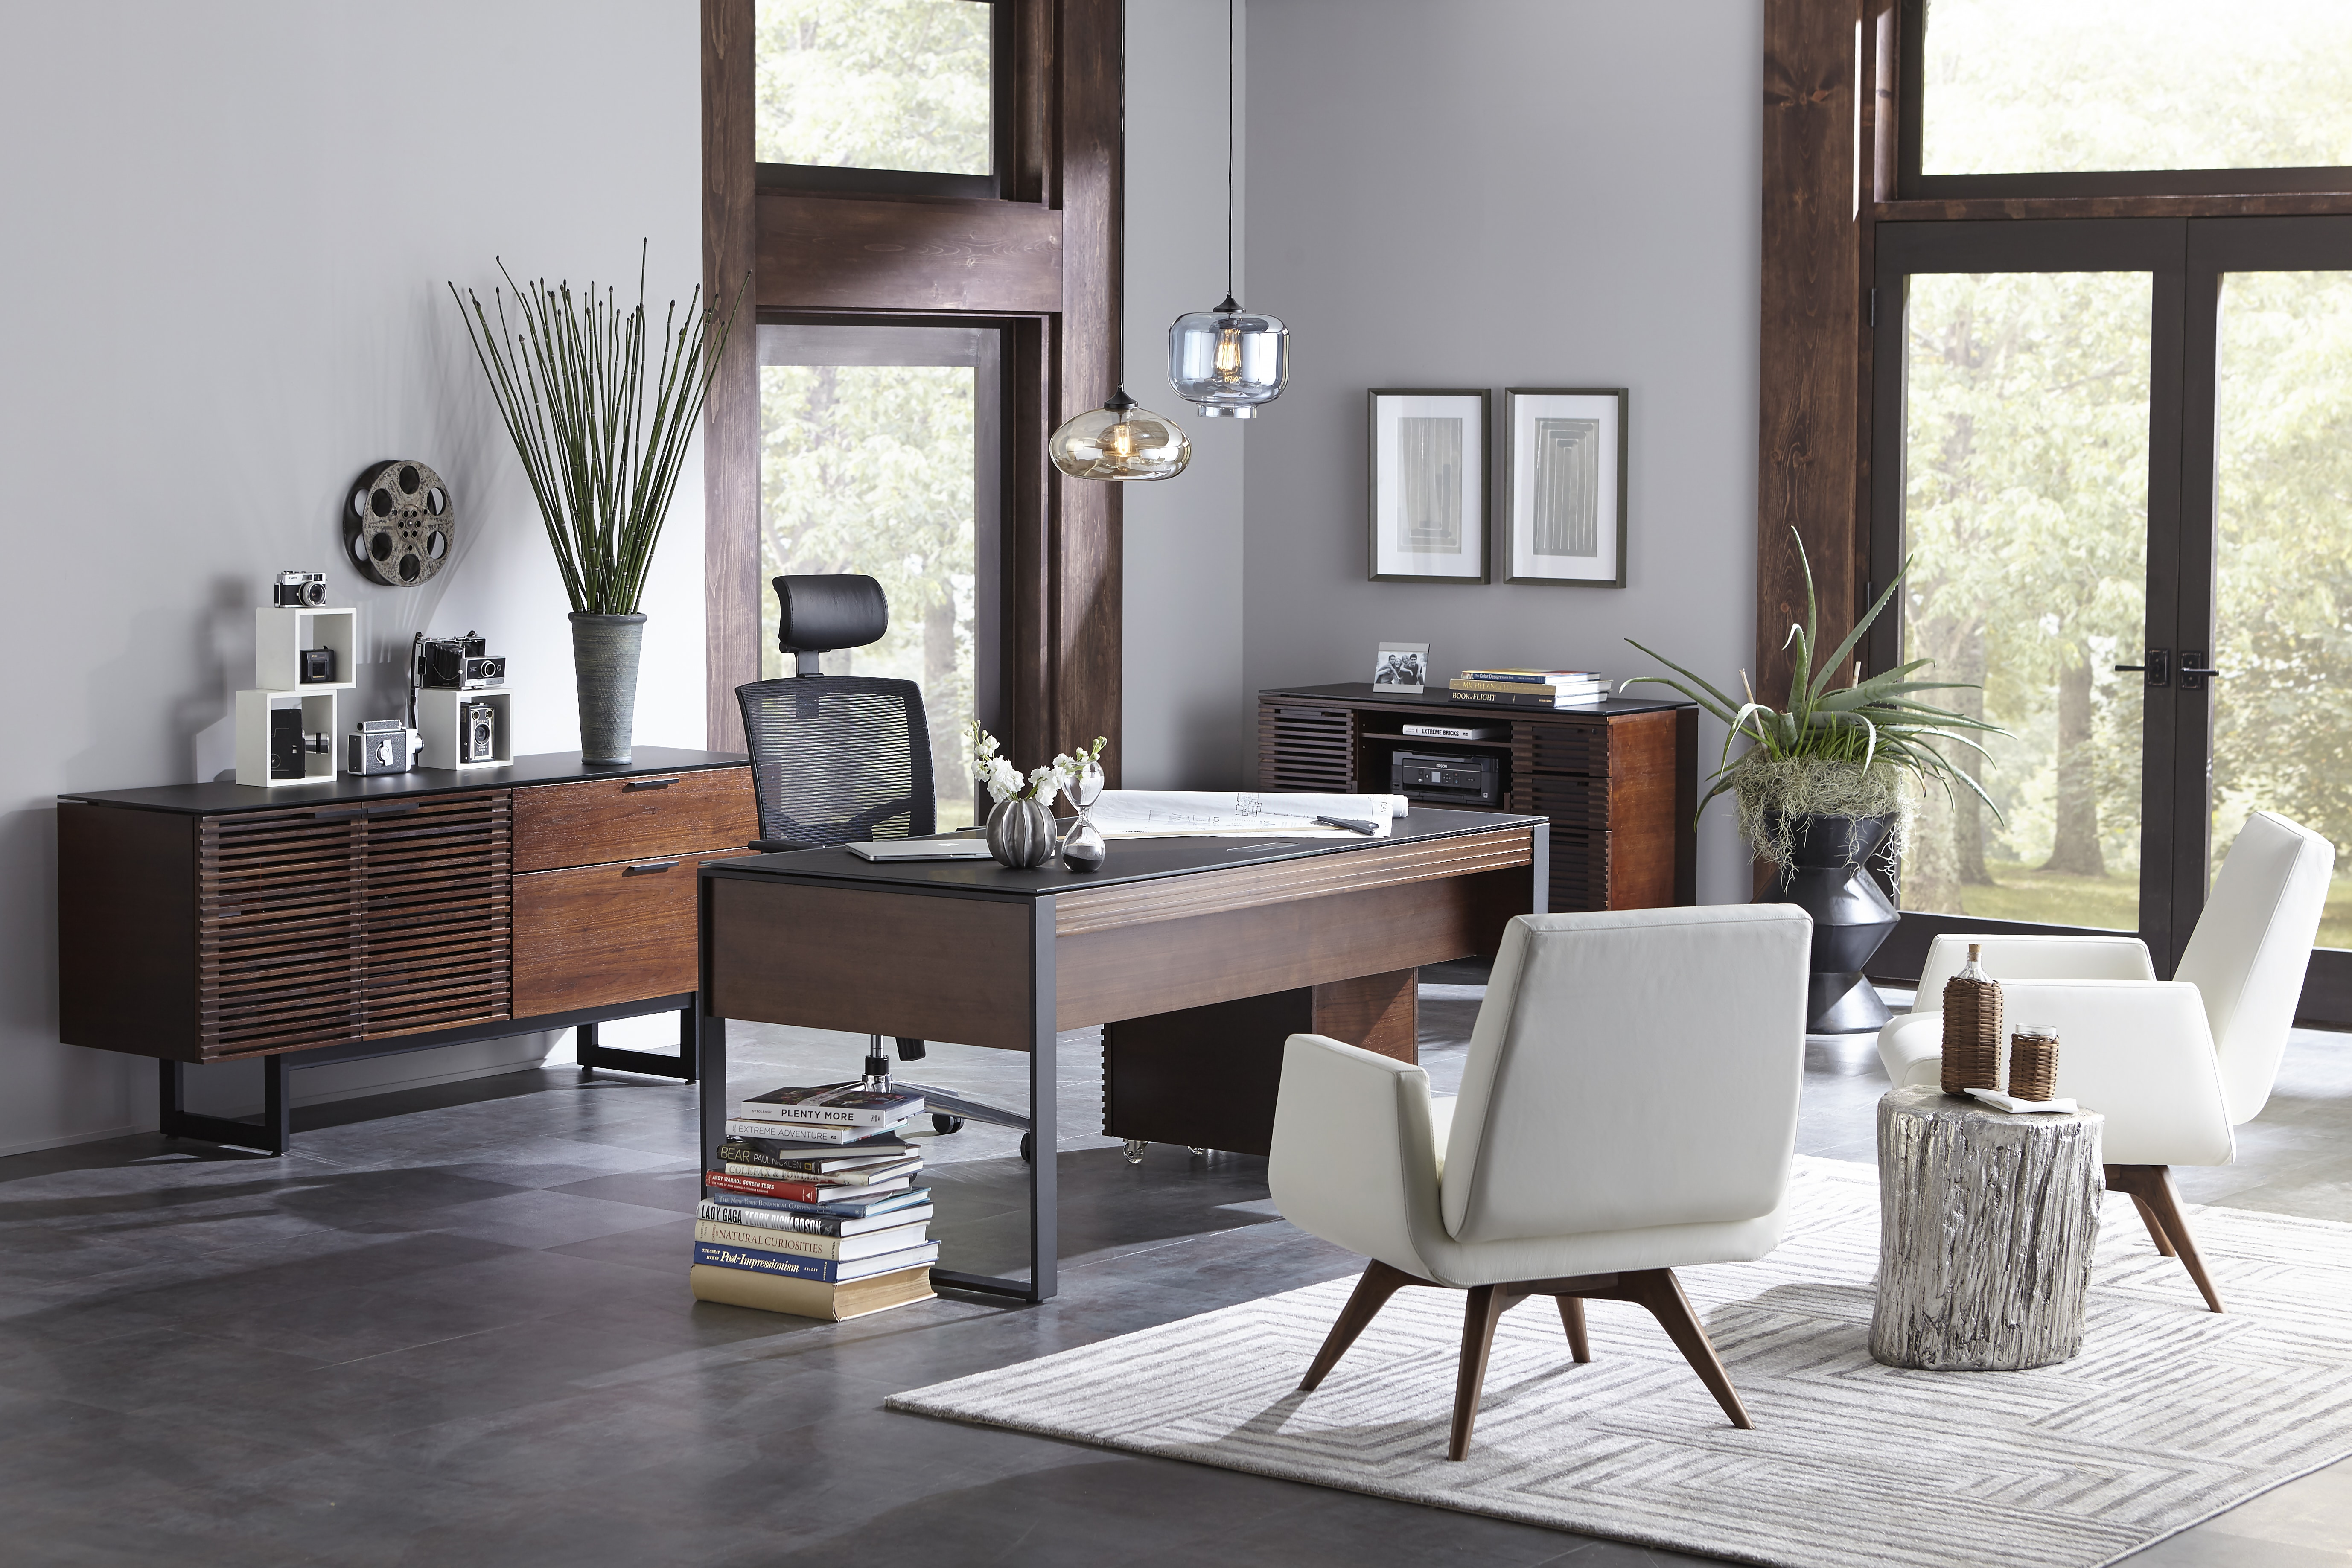 bdi clean s bisharp cupboard chattanooga fit it like pairing these p a pure peas of studio carrots together firm blog smart pieces arden qlt classic saarinen eames beat wid two uptown and constrain ave to fmt hard designers go furniture modern resmode white